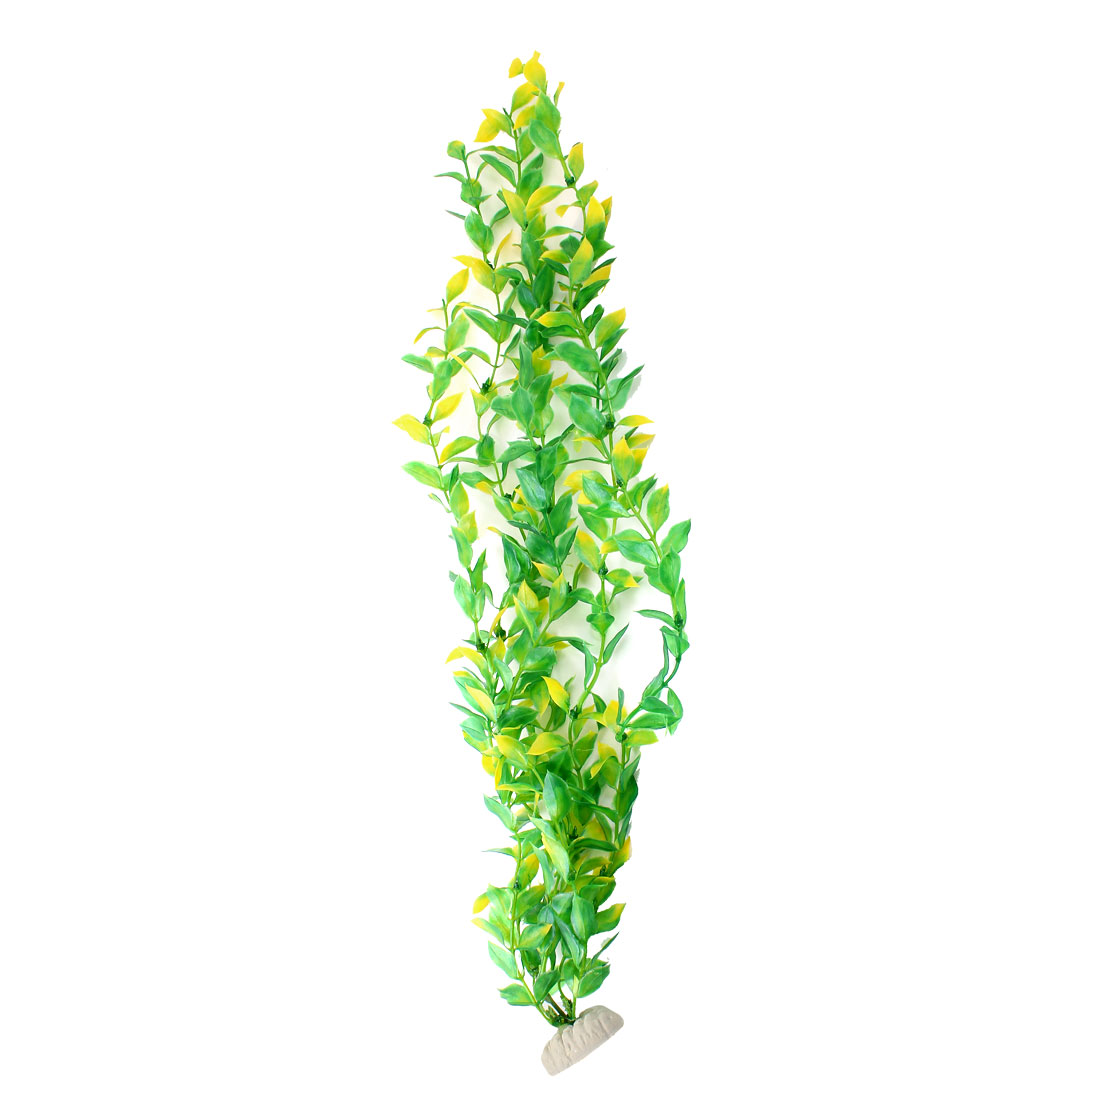 "Aquarium Fish Tank Ornament Landscaping Artificial Emulational Underwater Water Plant Grass Decor Green Yellow 23.5"" Height"